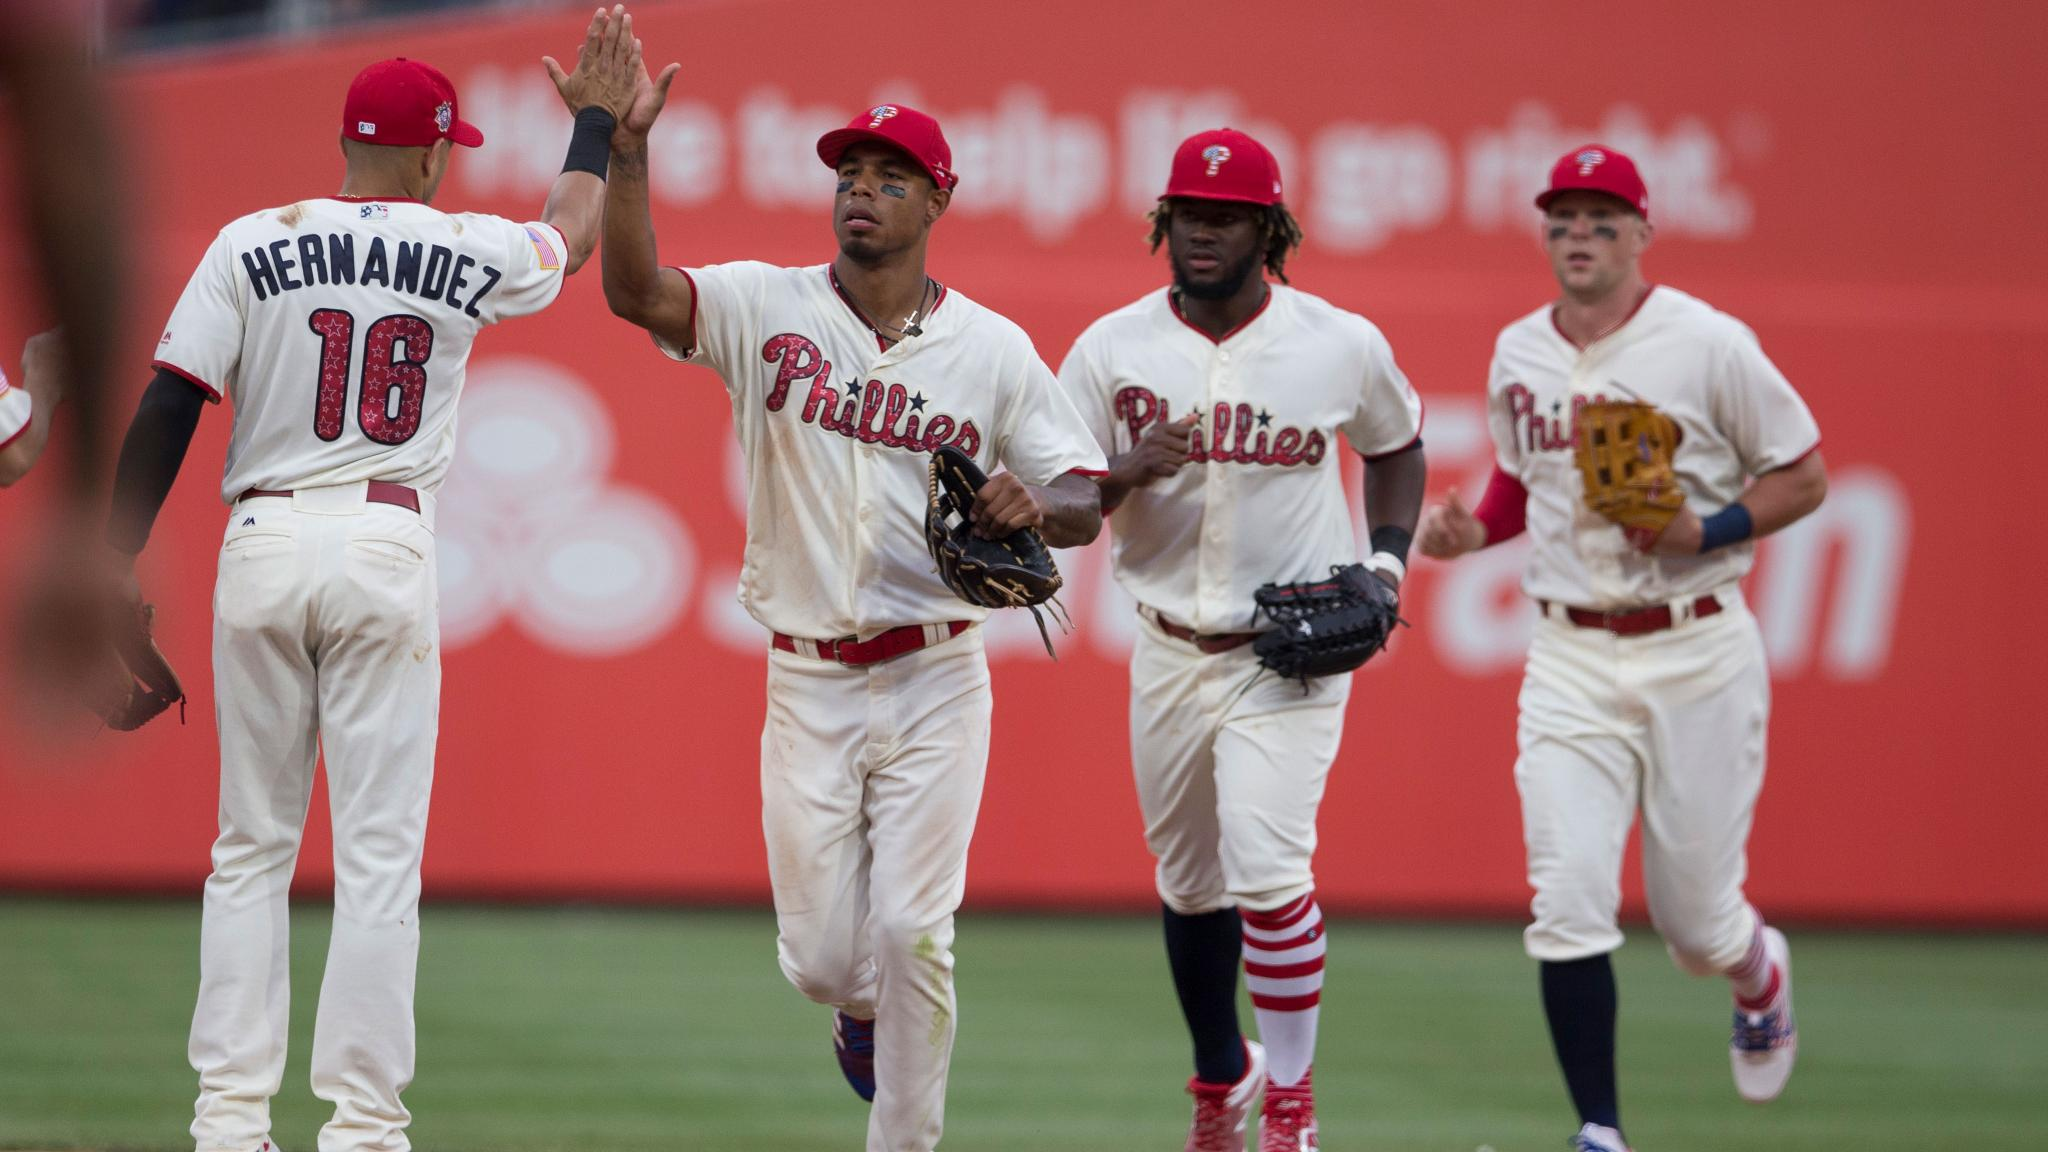 4⃣ Cities �� Days 1⃣1⃣ Games 1⃣ Game out of first place  Here we go. #BeBold https://t.co/GgRrmOI9hc